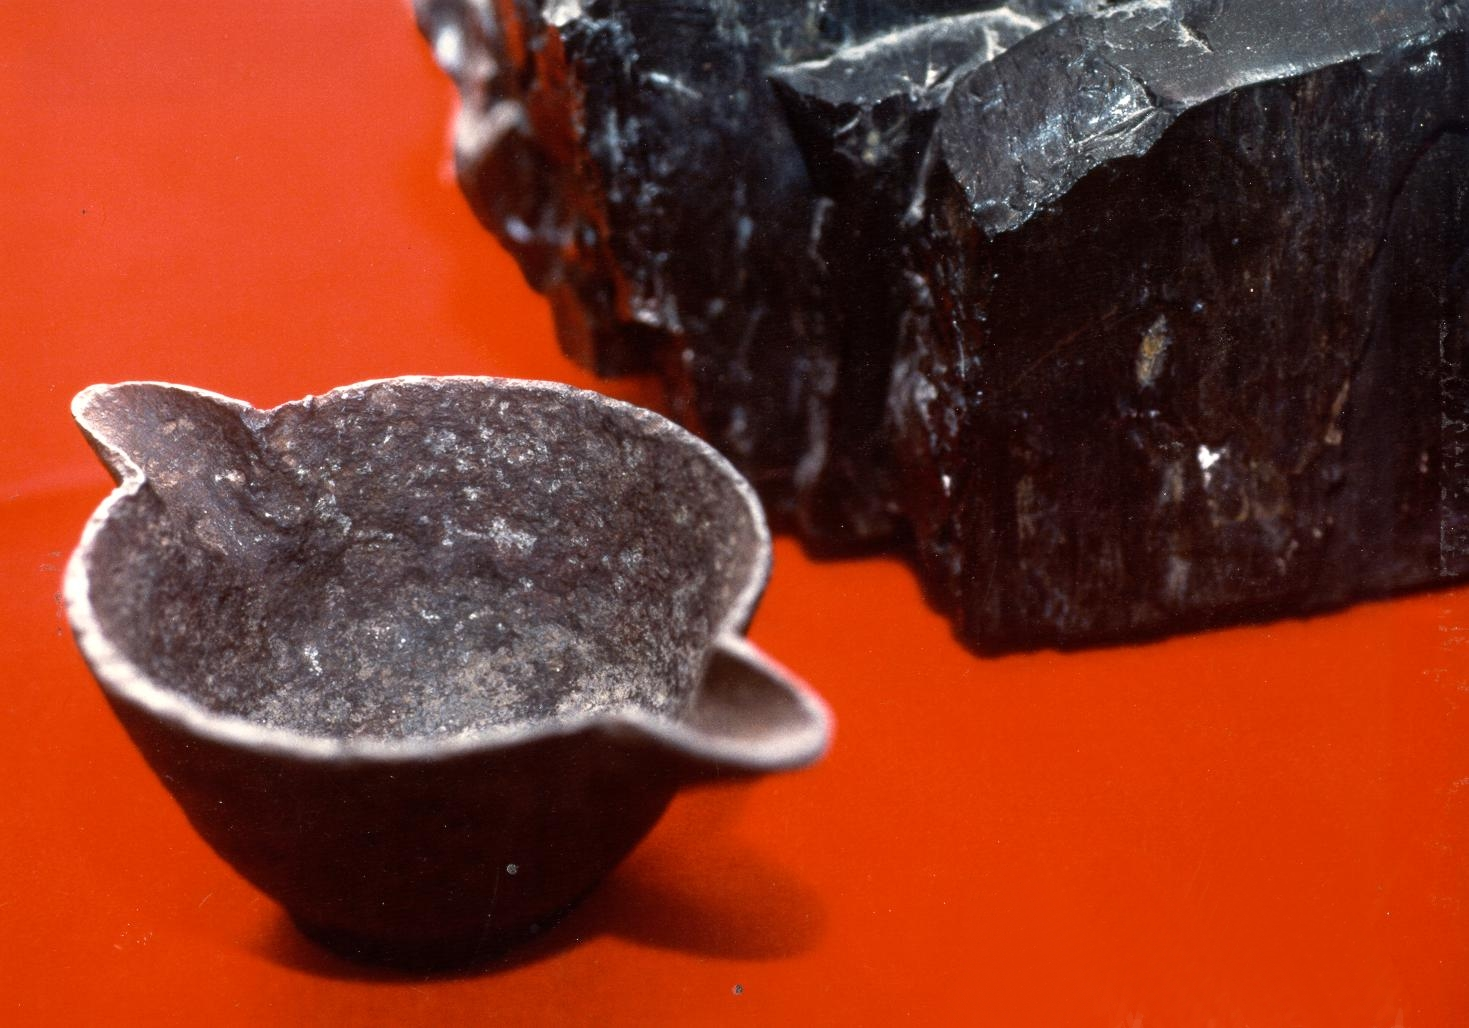 Artifacts in Coal http://thebiggestsecretsoftheworld.blogspot.com/2011/02/iron-pot-embedded-inside-coal-lump-out.html